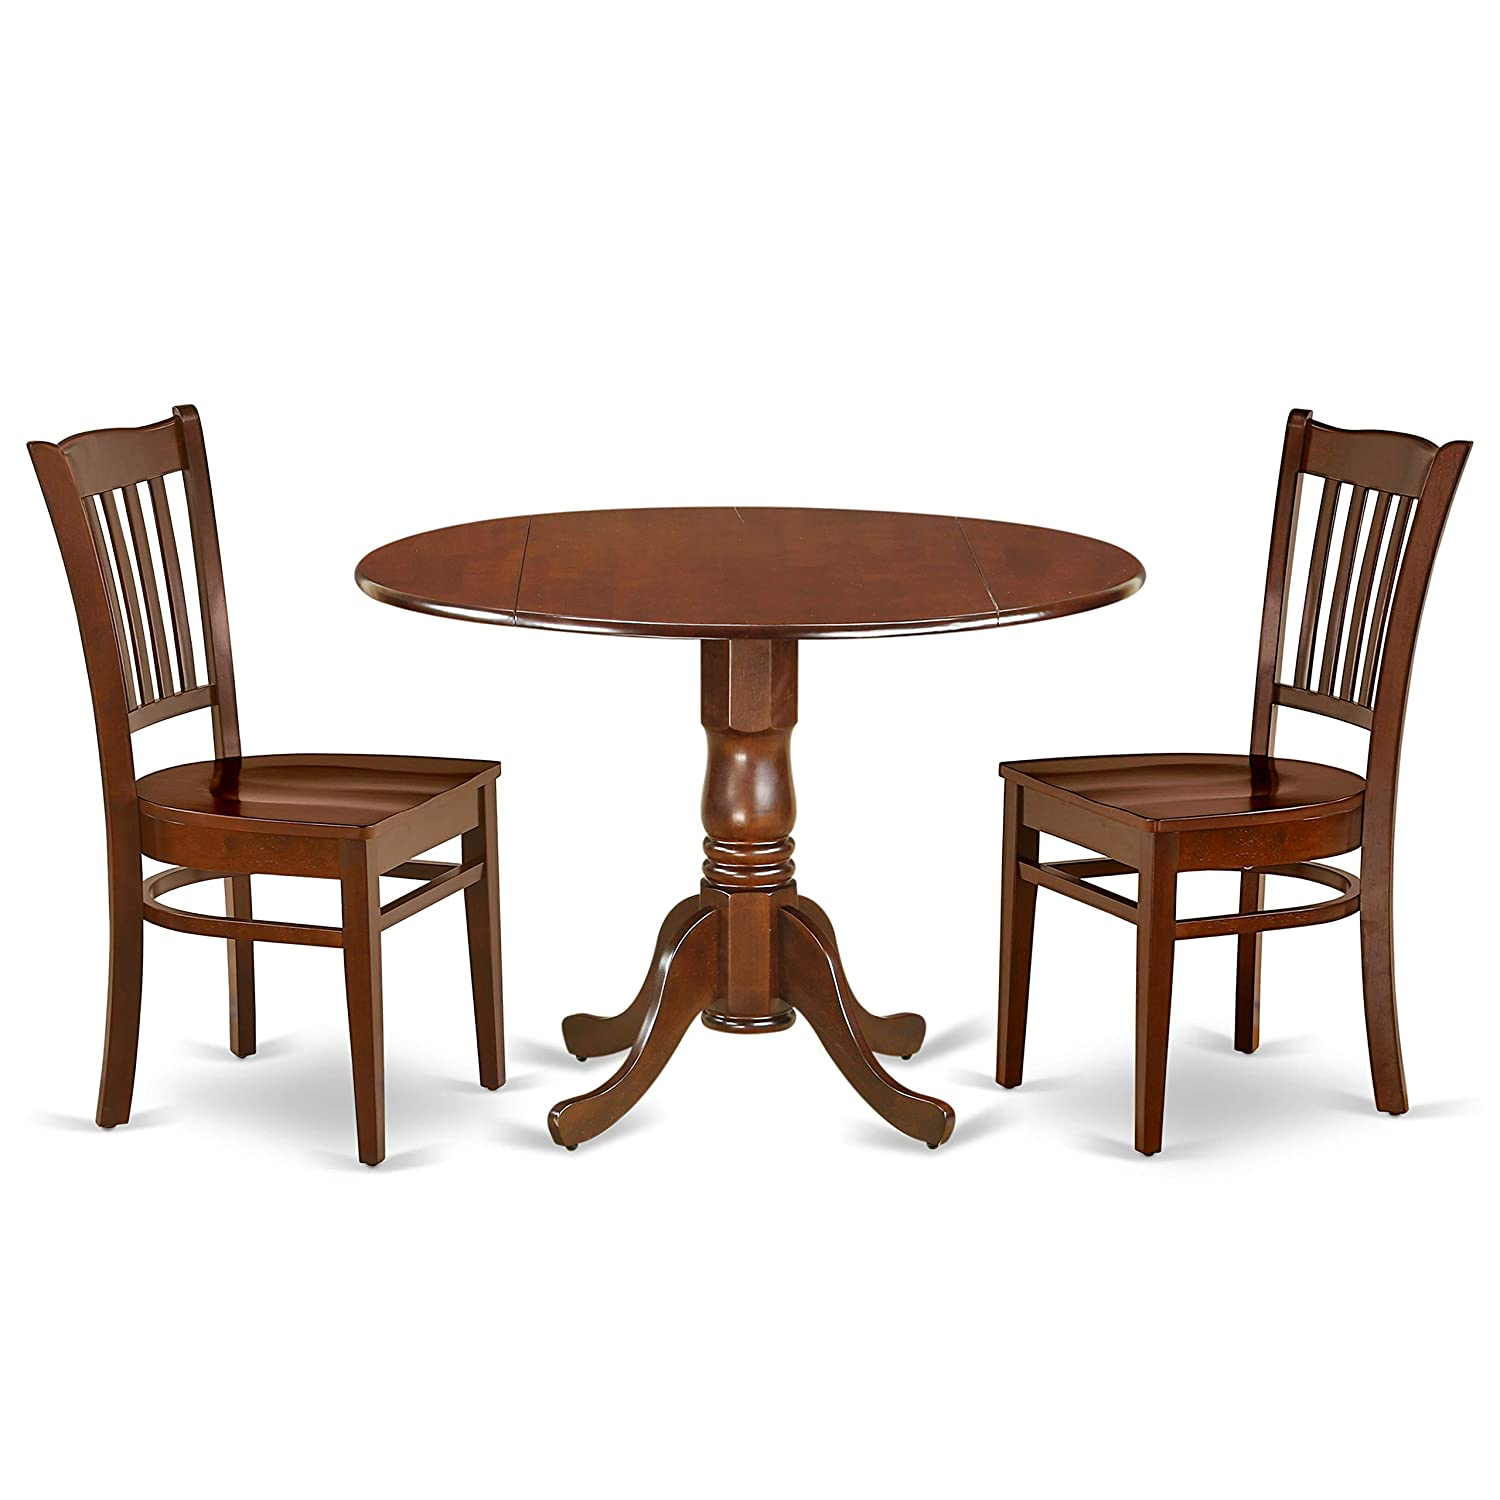 East West Furniture DLGR3-MAH-W 3Pc Round 42 Inch Dining Table with Two 9-Inch Drop Leaves and 2 Wood Seat Chairs, 3, Mahogany